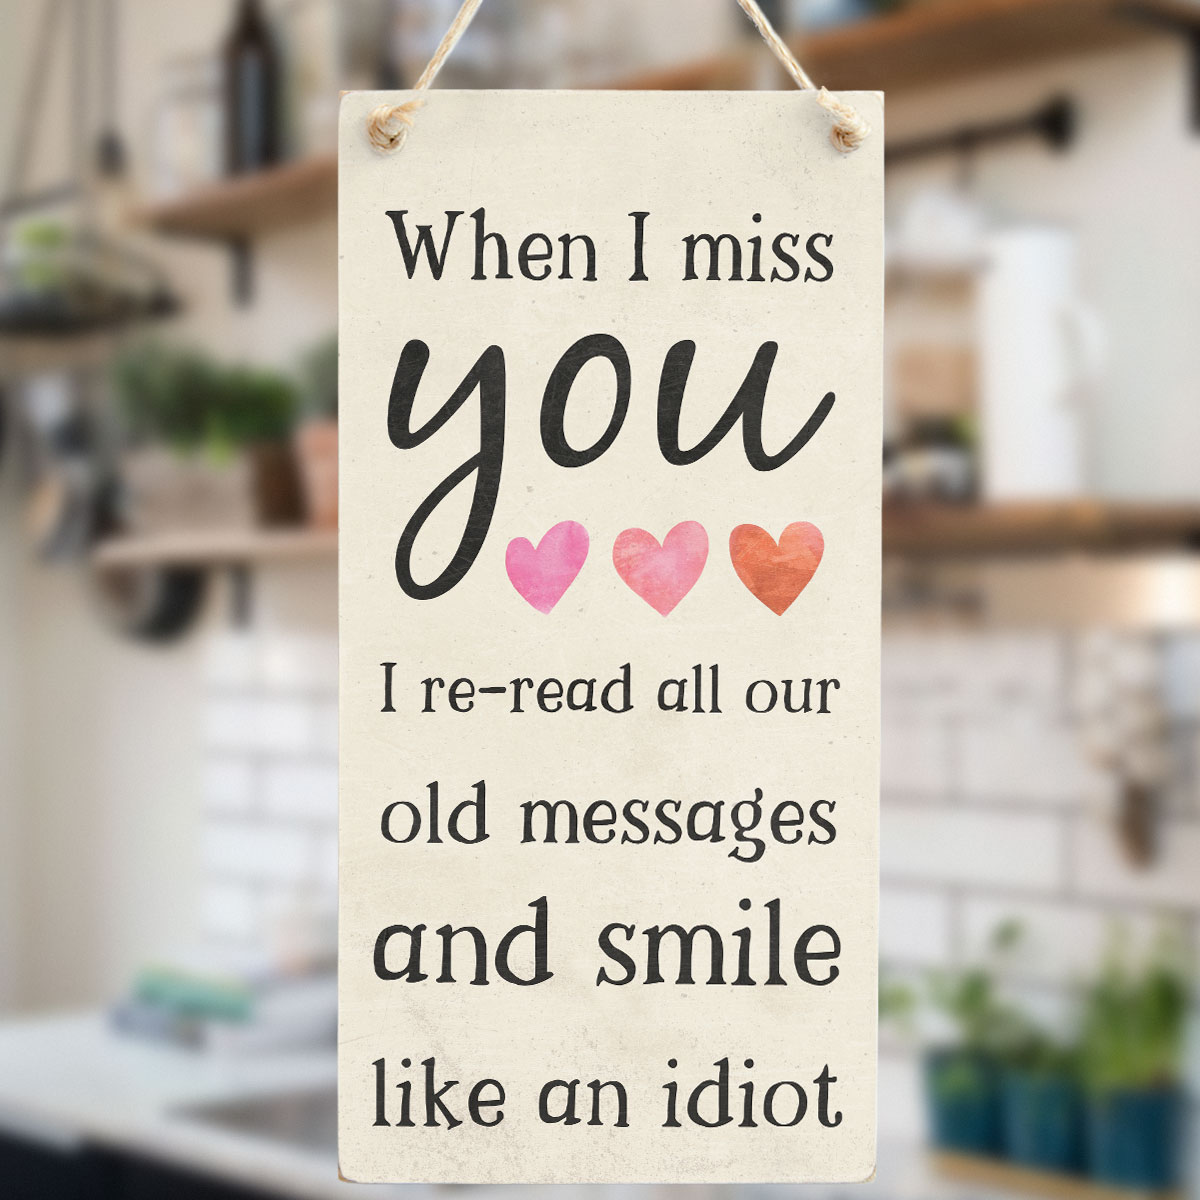 When I Miss You Re Read All Our Old Messages And Smile Like An Idiot Lovely Gift Idea For Girlfriend Or Boyfriends Birthday Long Distance Relationship